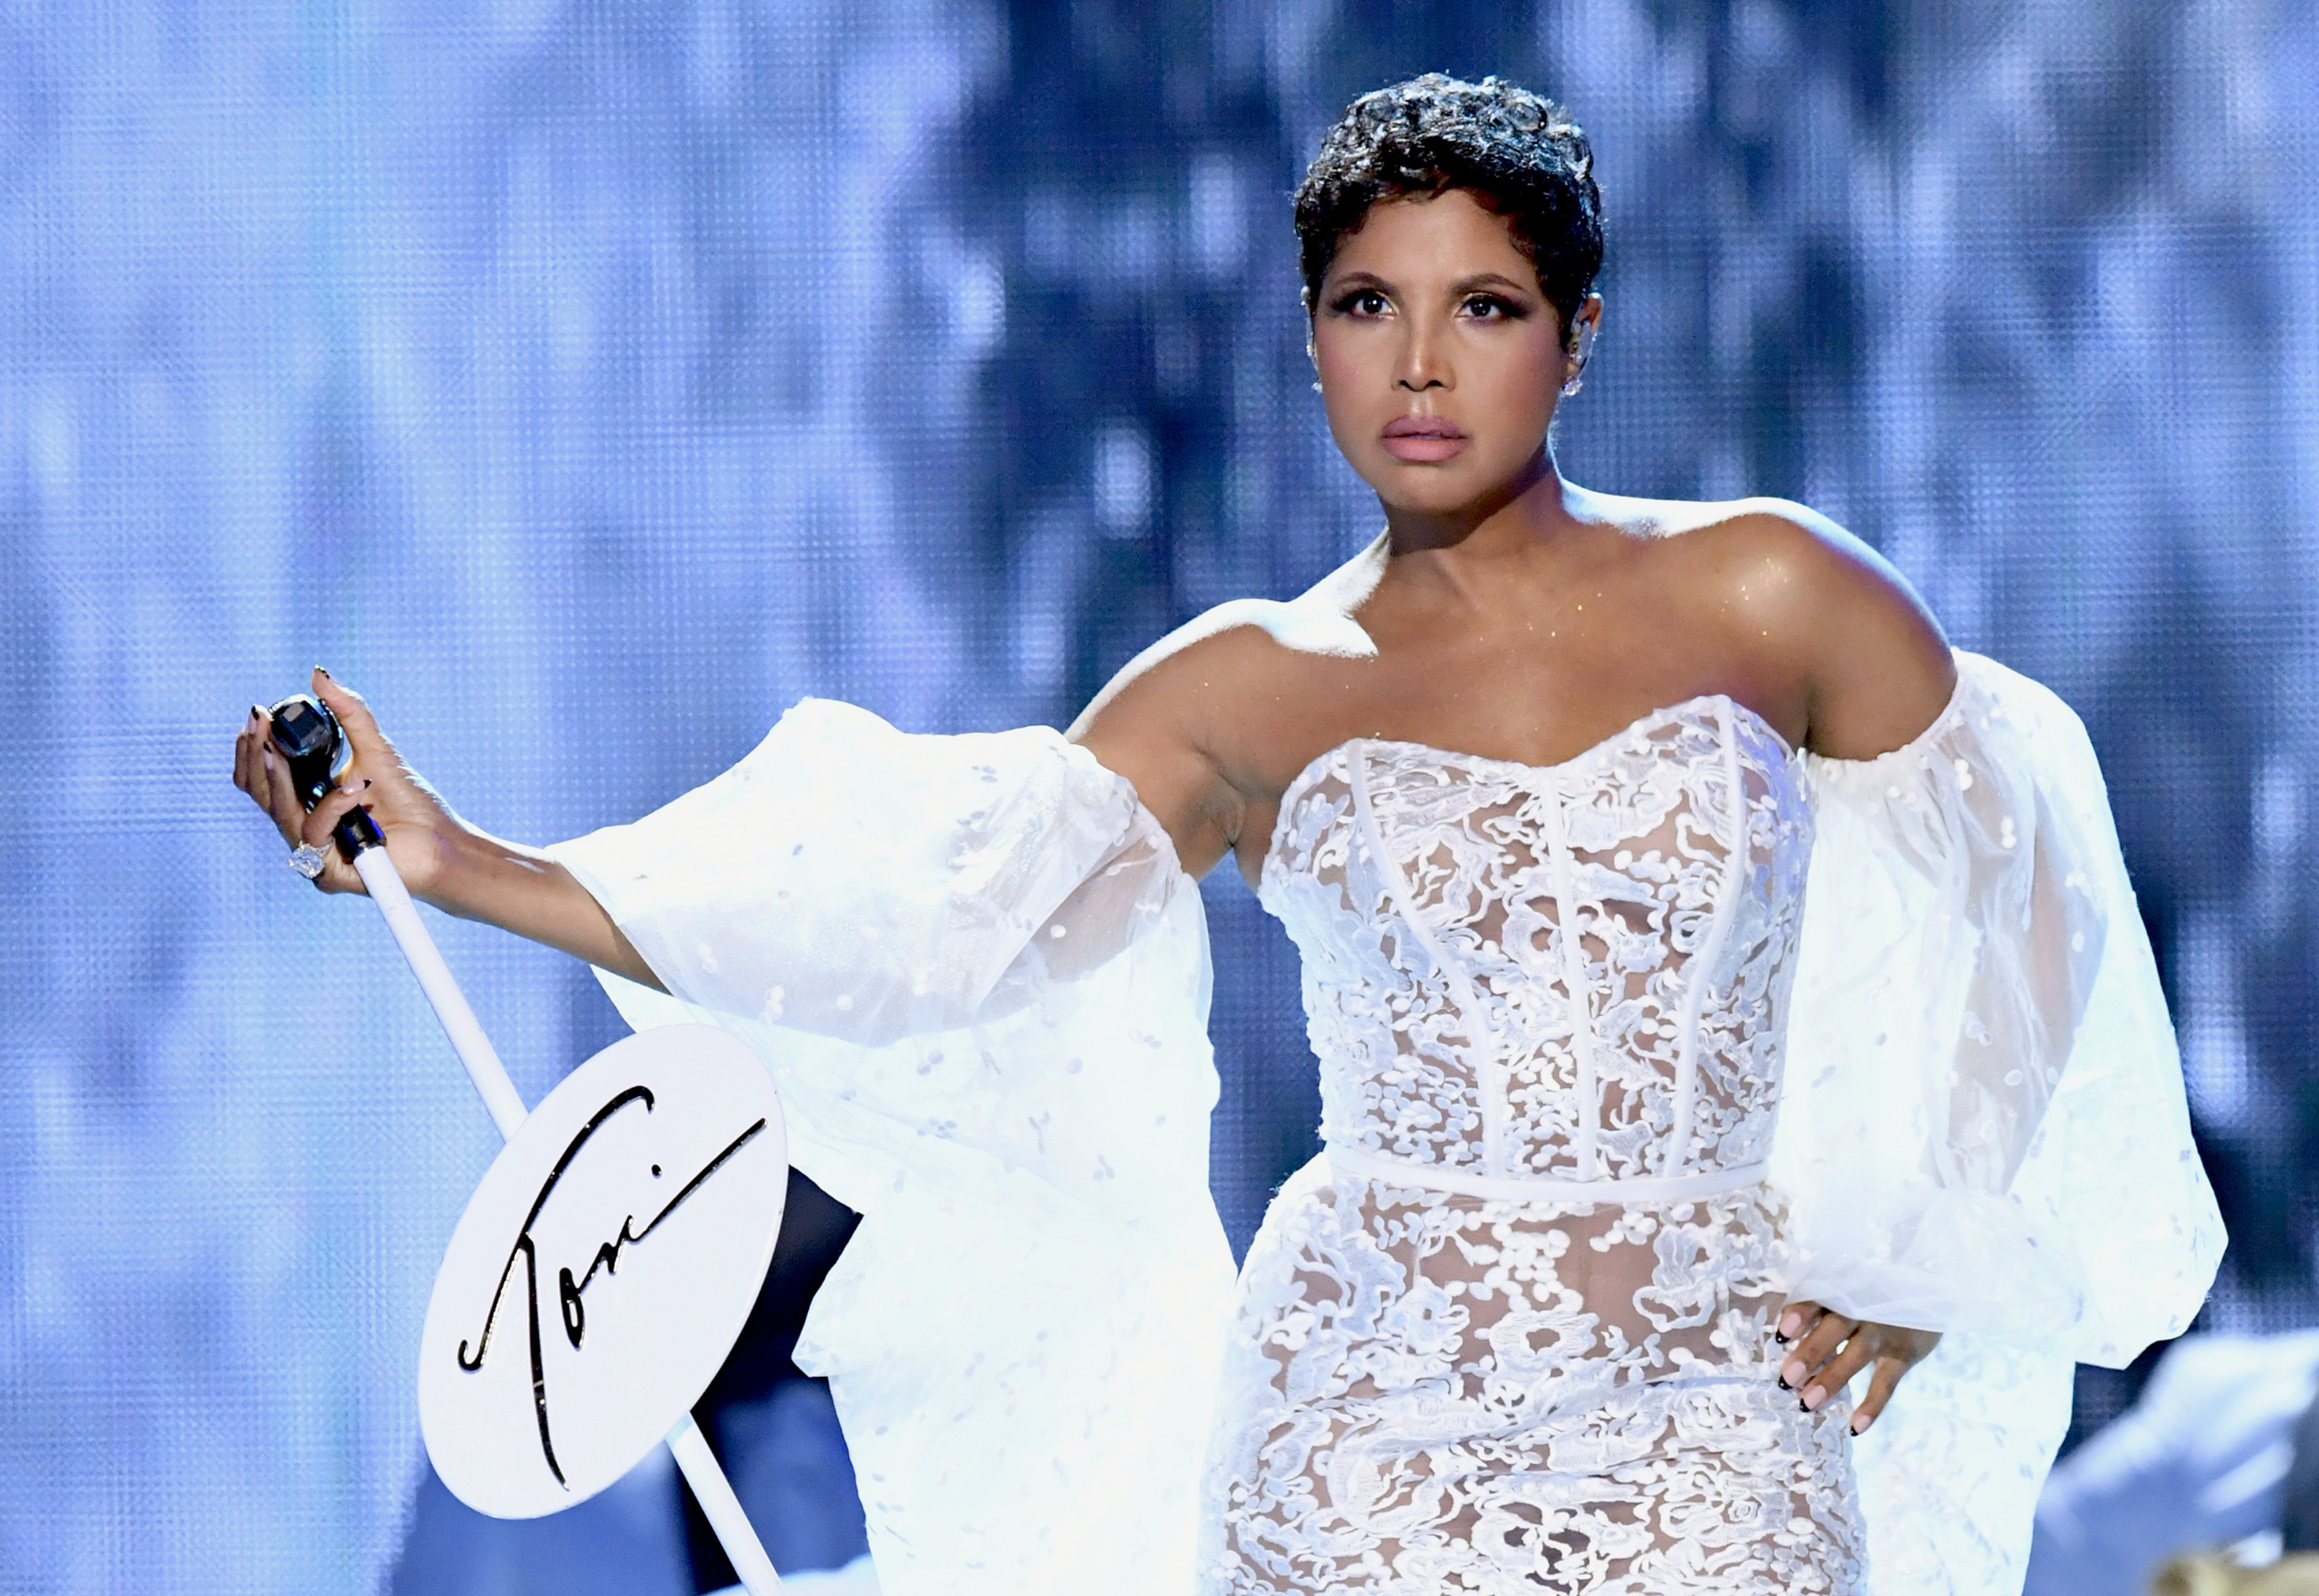 Toni Braxton performs at the 2019 American Music Awards at Microsoft Theater on November 24, 2019 in Los Angeles, California.| Source: Getty Images